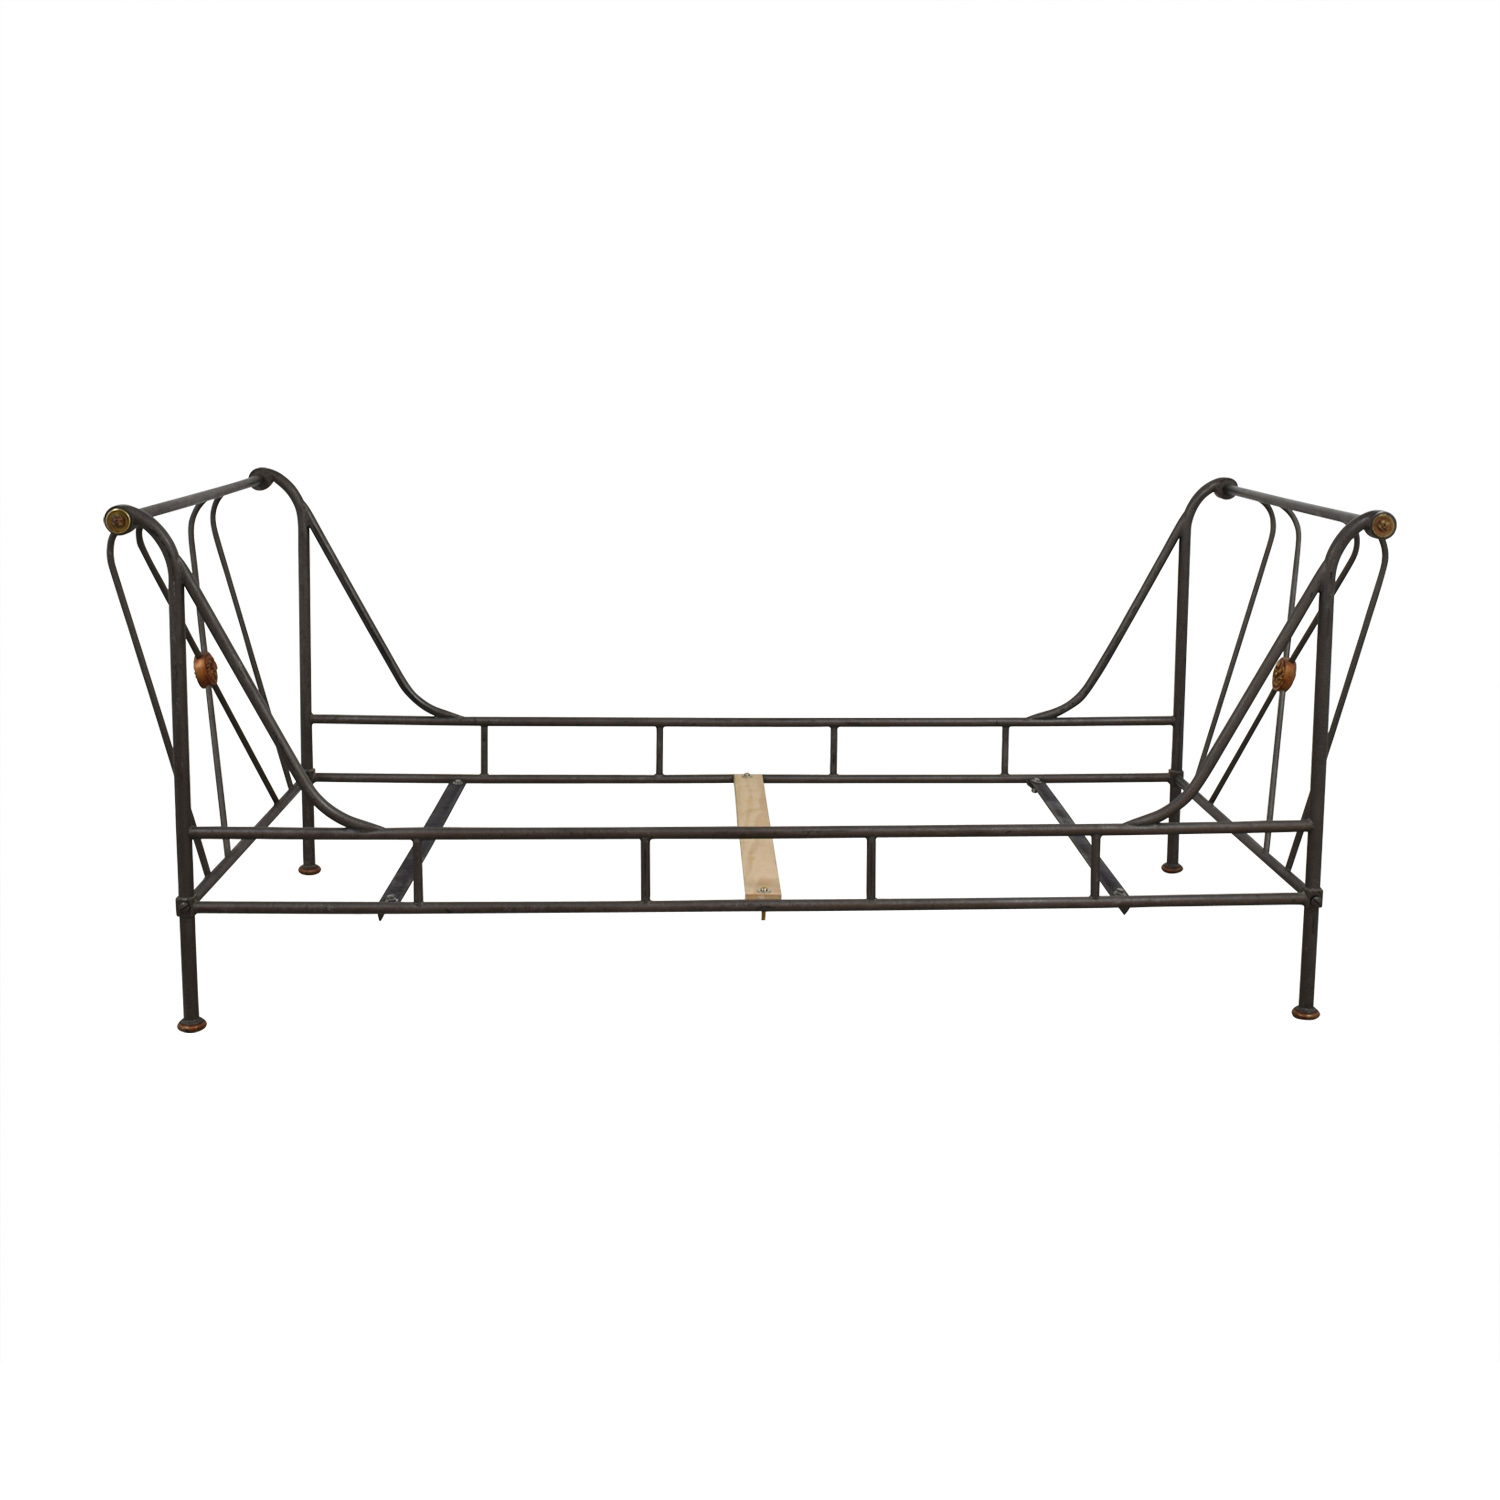 Designer Custom Metal Daybed price